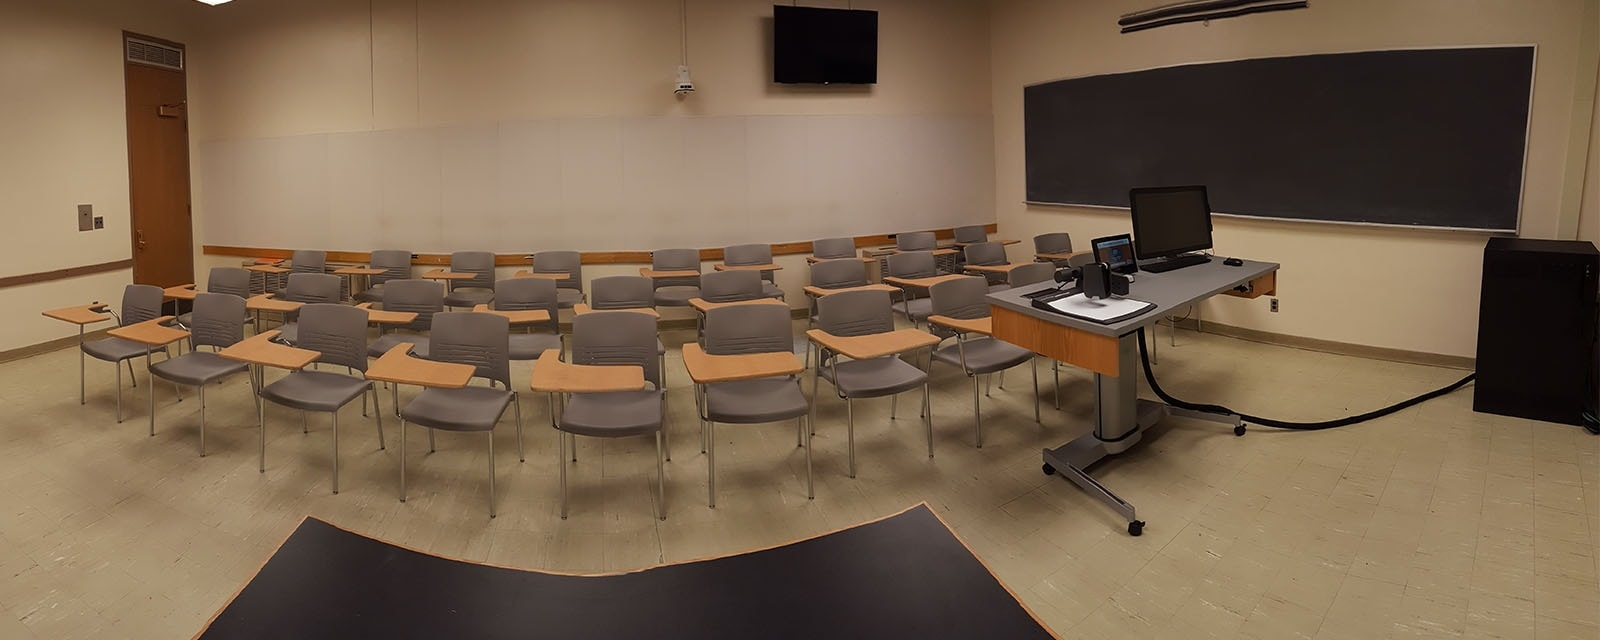 Panorama of physics 106 from front of room, movable chairs, teaching station front right